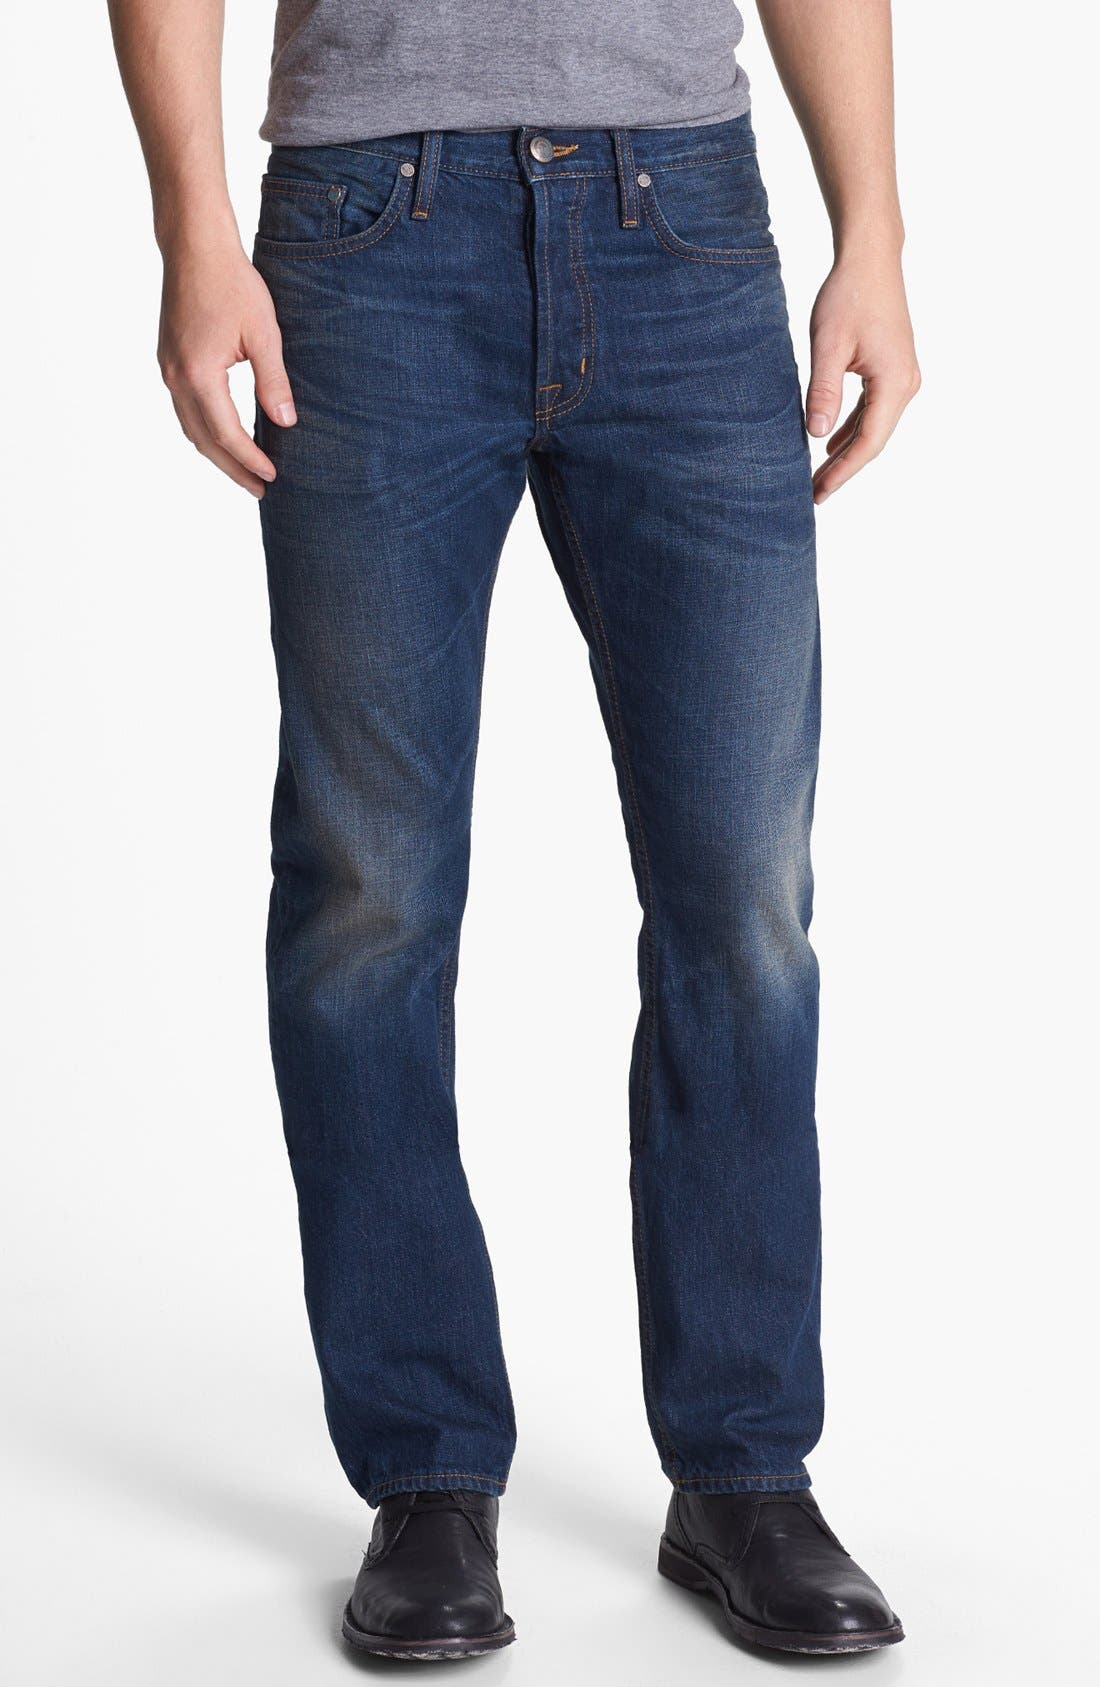 '1874 Monte Carlo' Straight Leg Selvedge Jeans,                             Main thumbnail 1, color,                             420